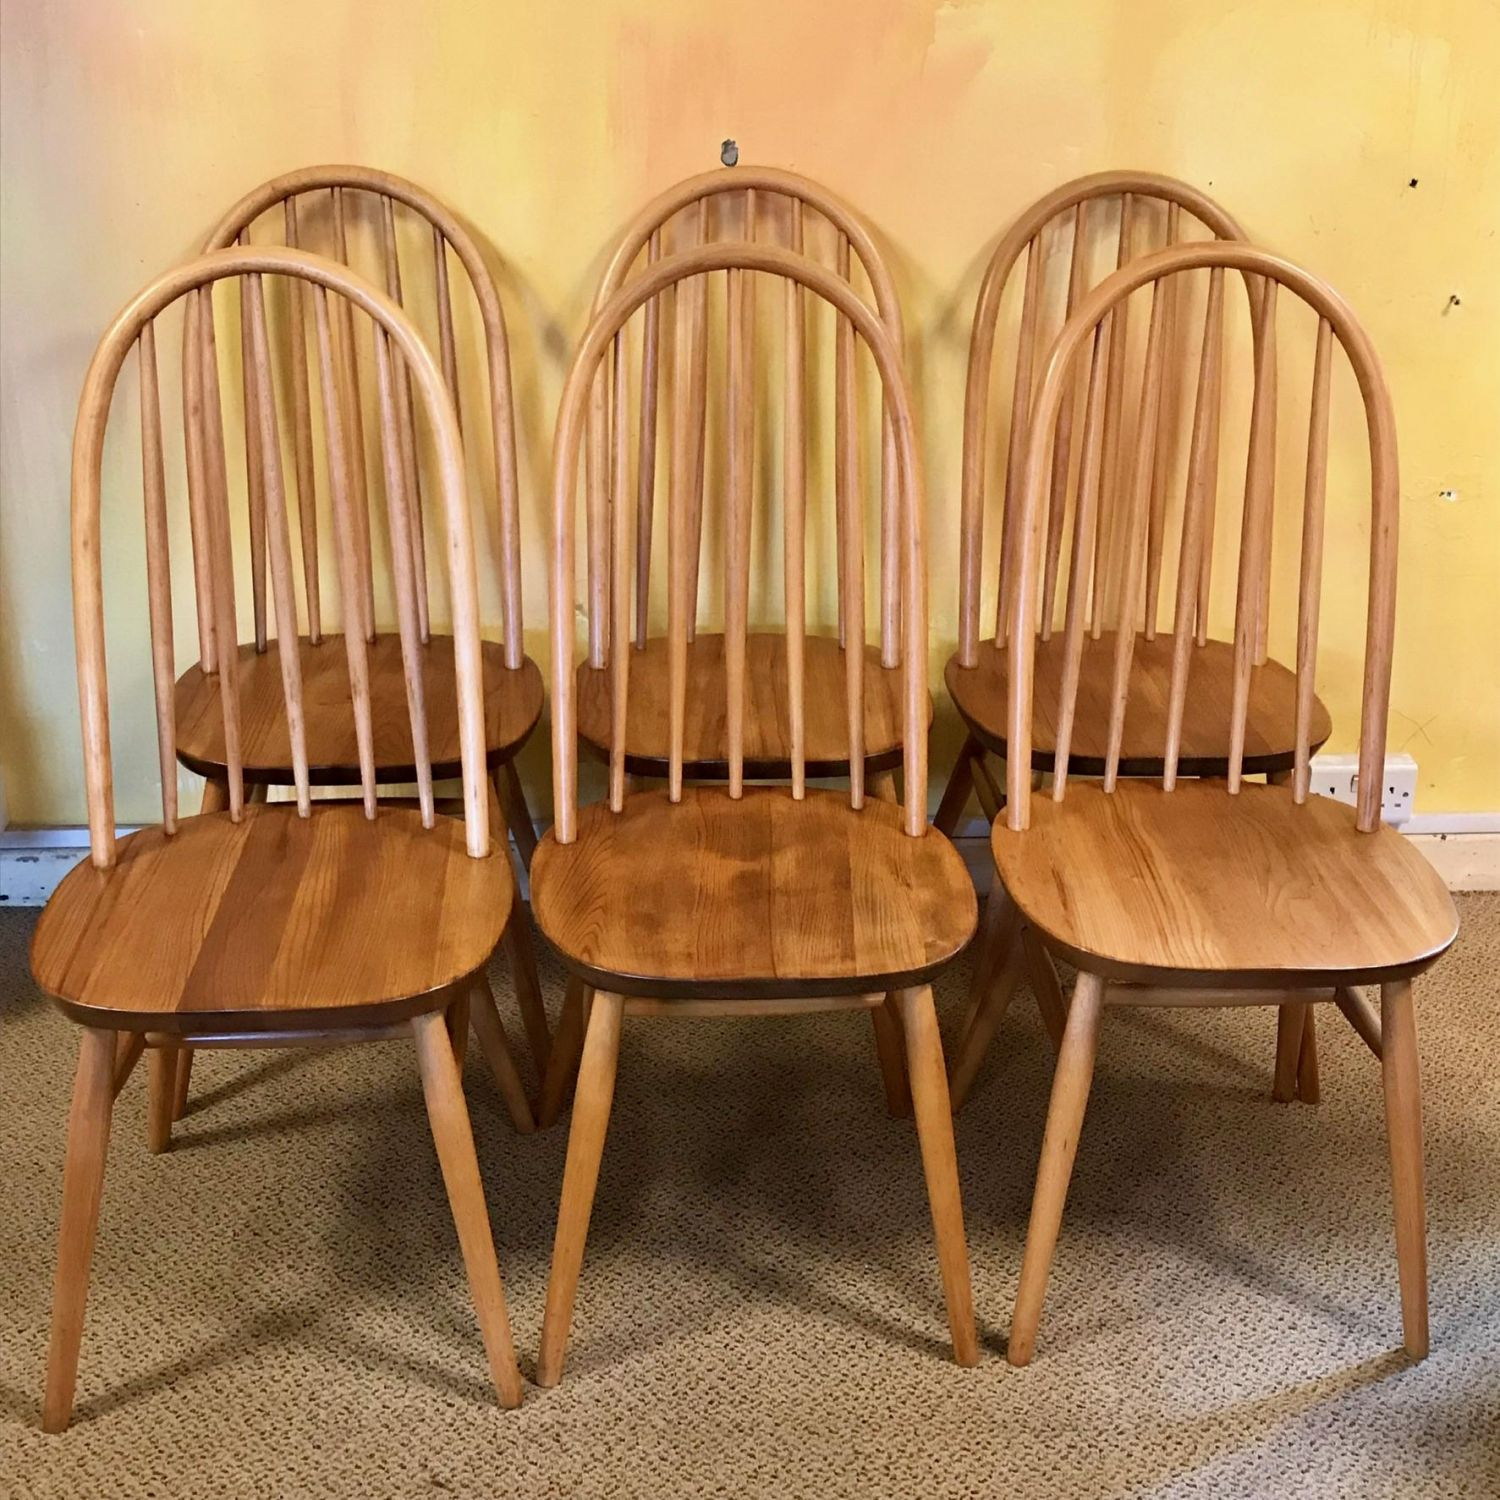 Phenomenal Set Of Six 1970S Beech And Elm Dining Chairs Download Free Architecture Designs Rallybritishbridgeorg